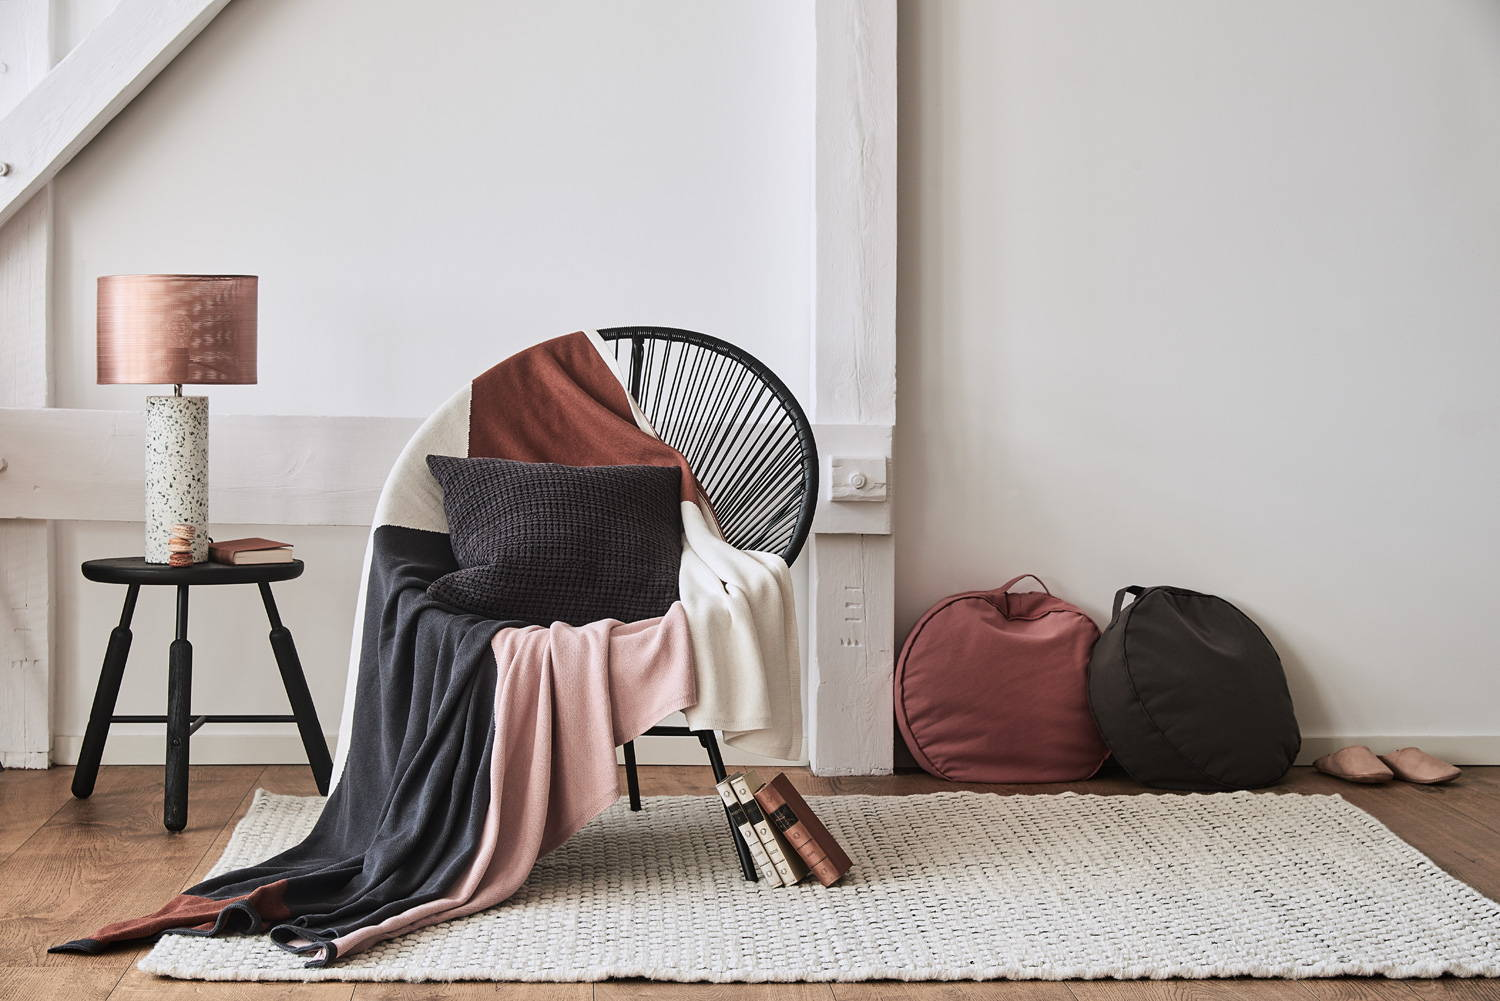 Lagom interior decor with grey throw, pink throw, cream throw, round cushions and cream rug